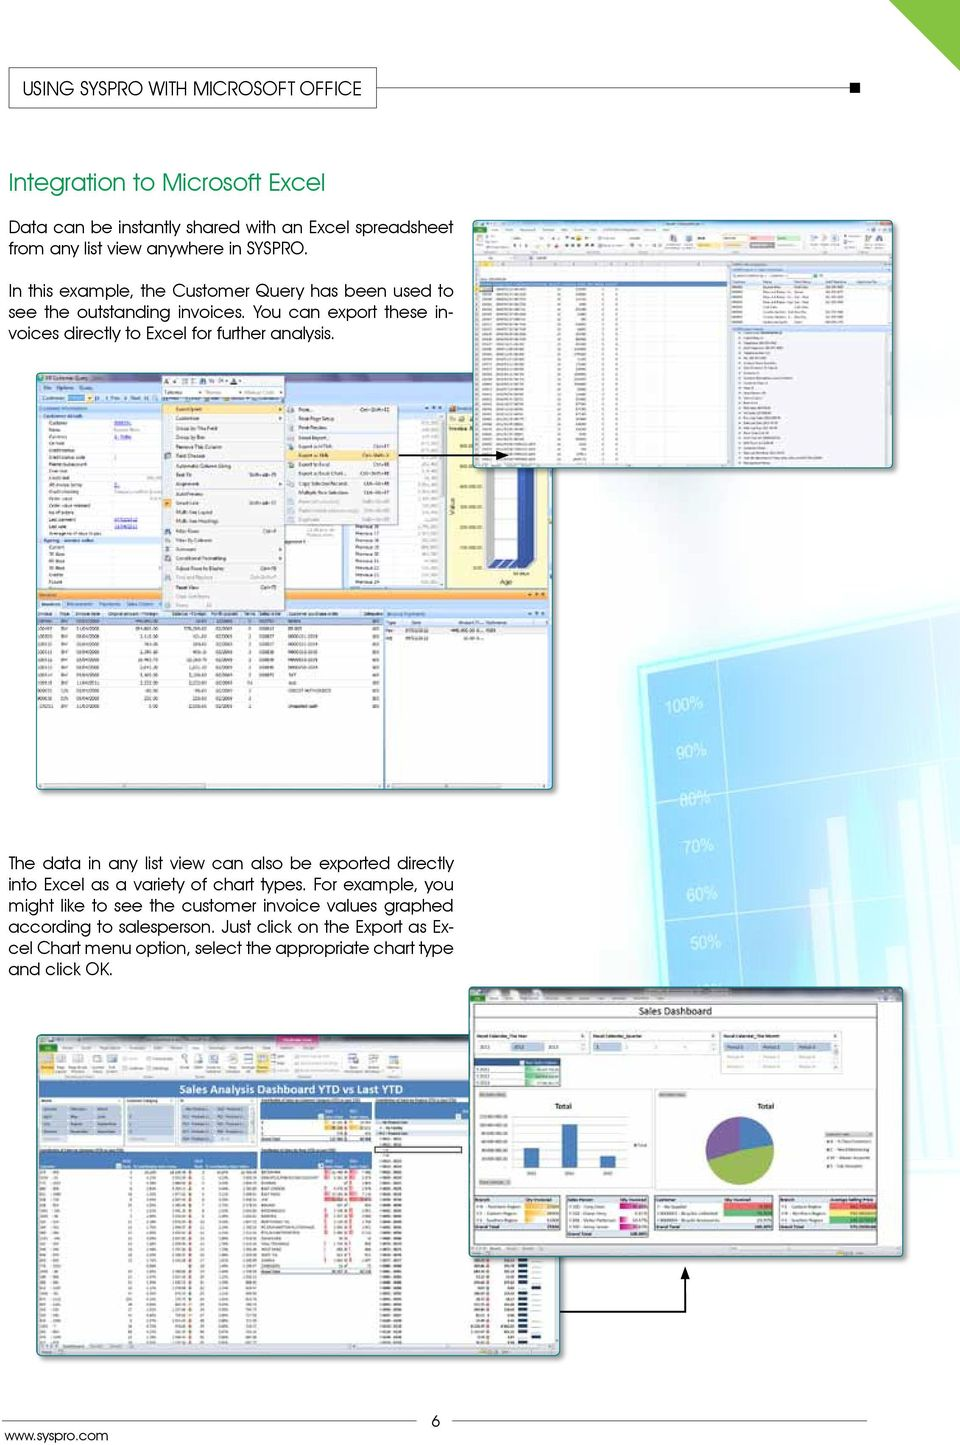 You can export these invoices directly to Excel for further analysis.